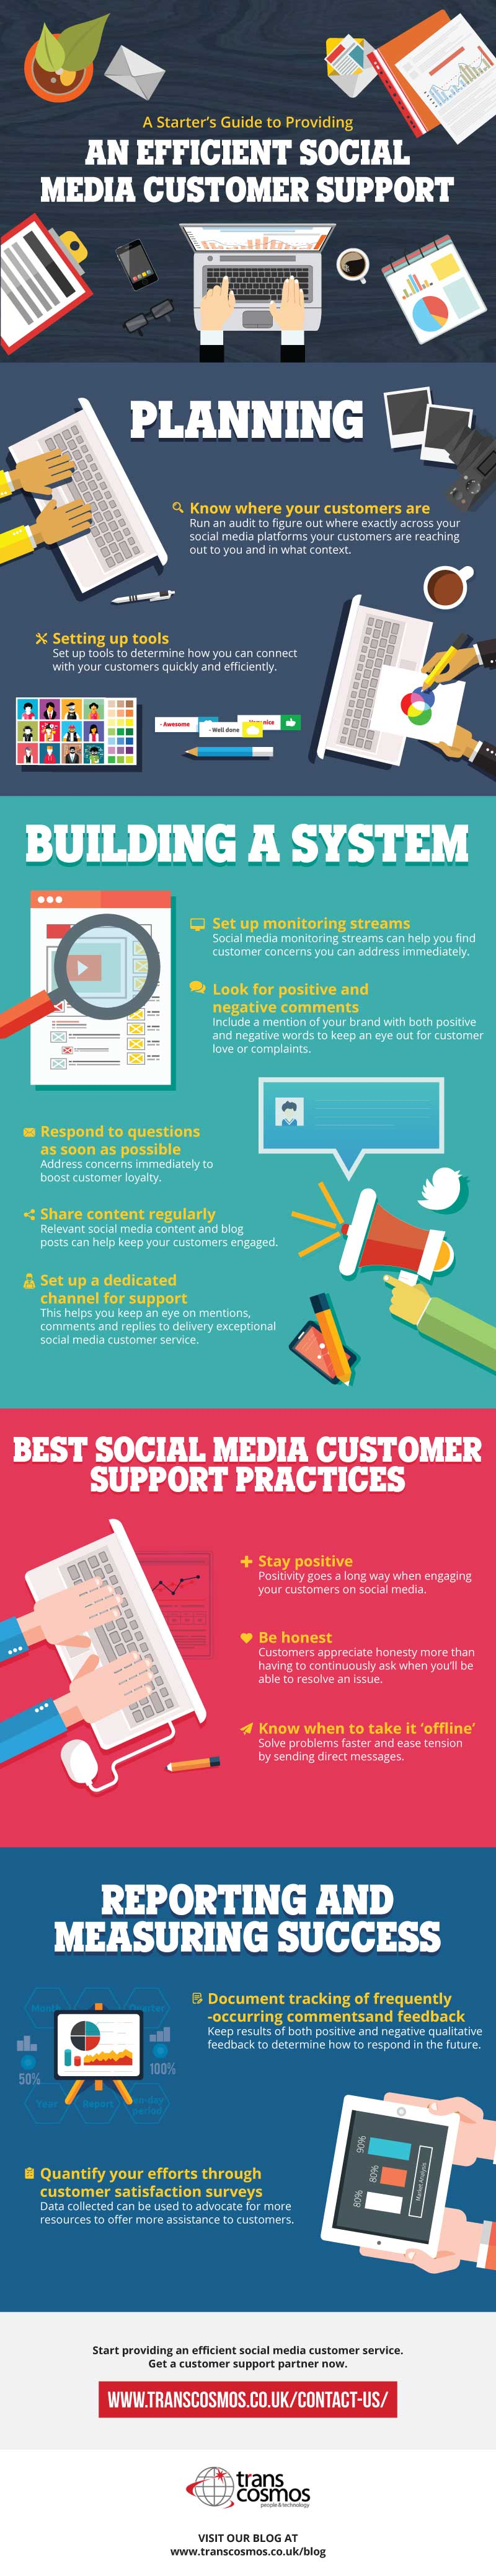 A Starter's Guide to Providing an Efficient Social Media Customer Support